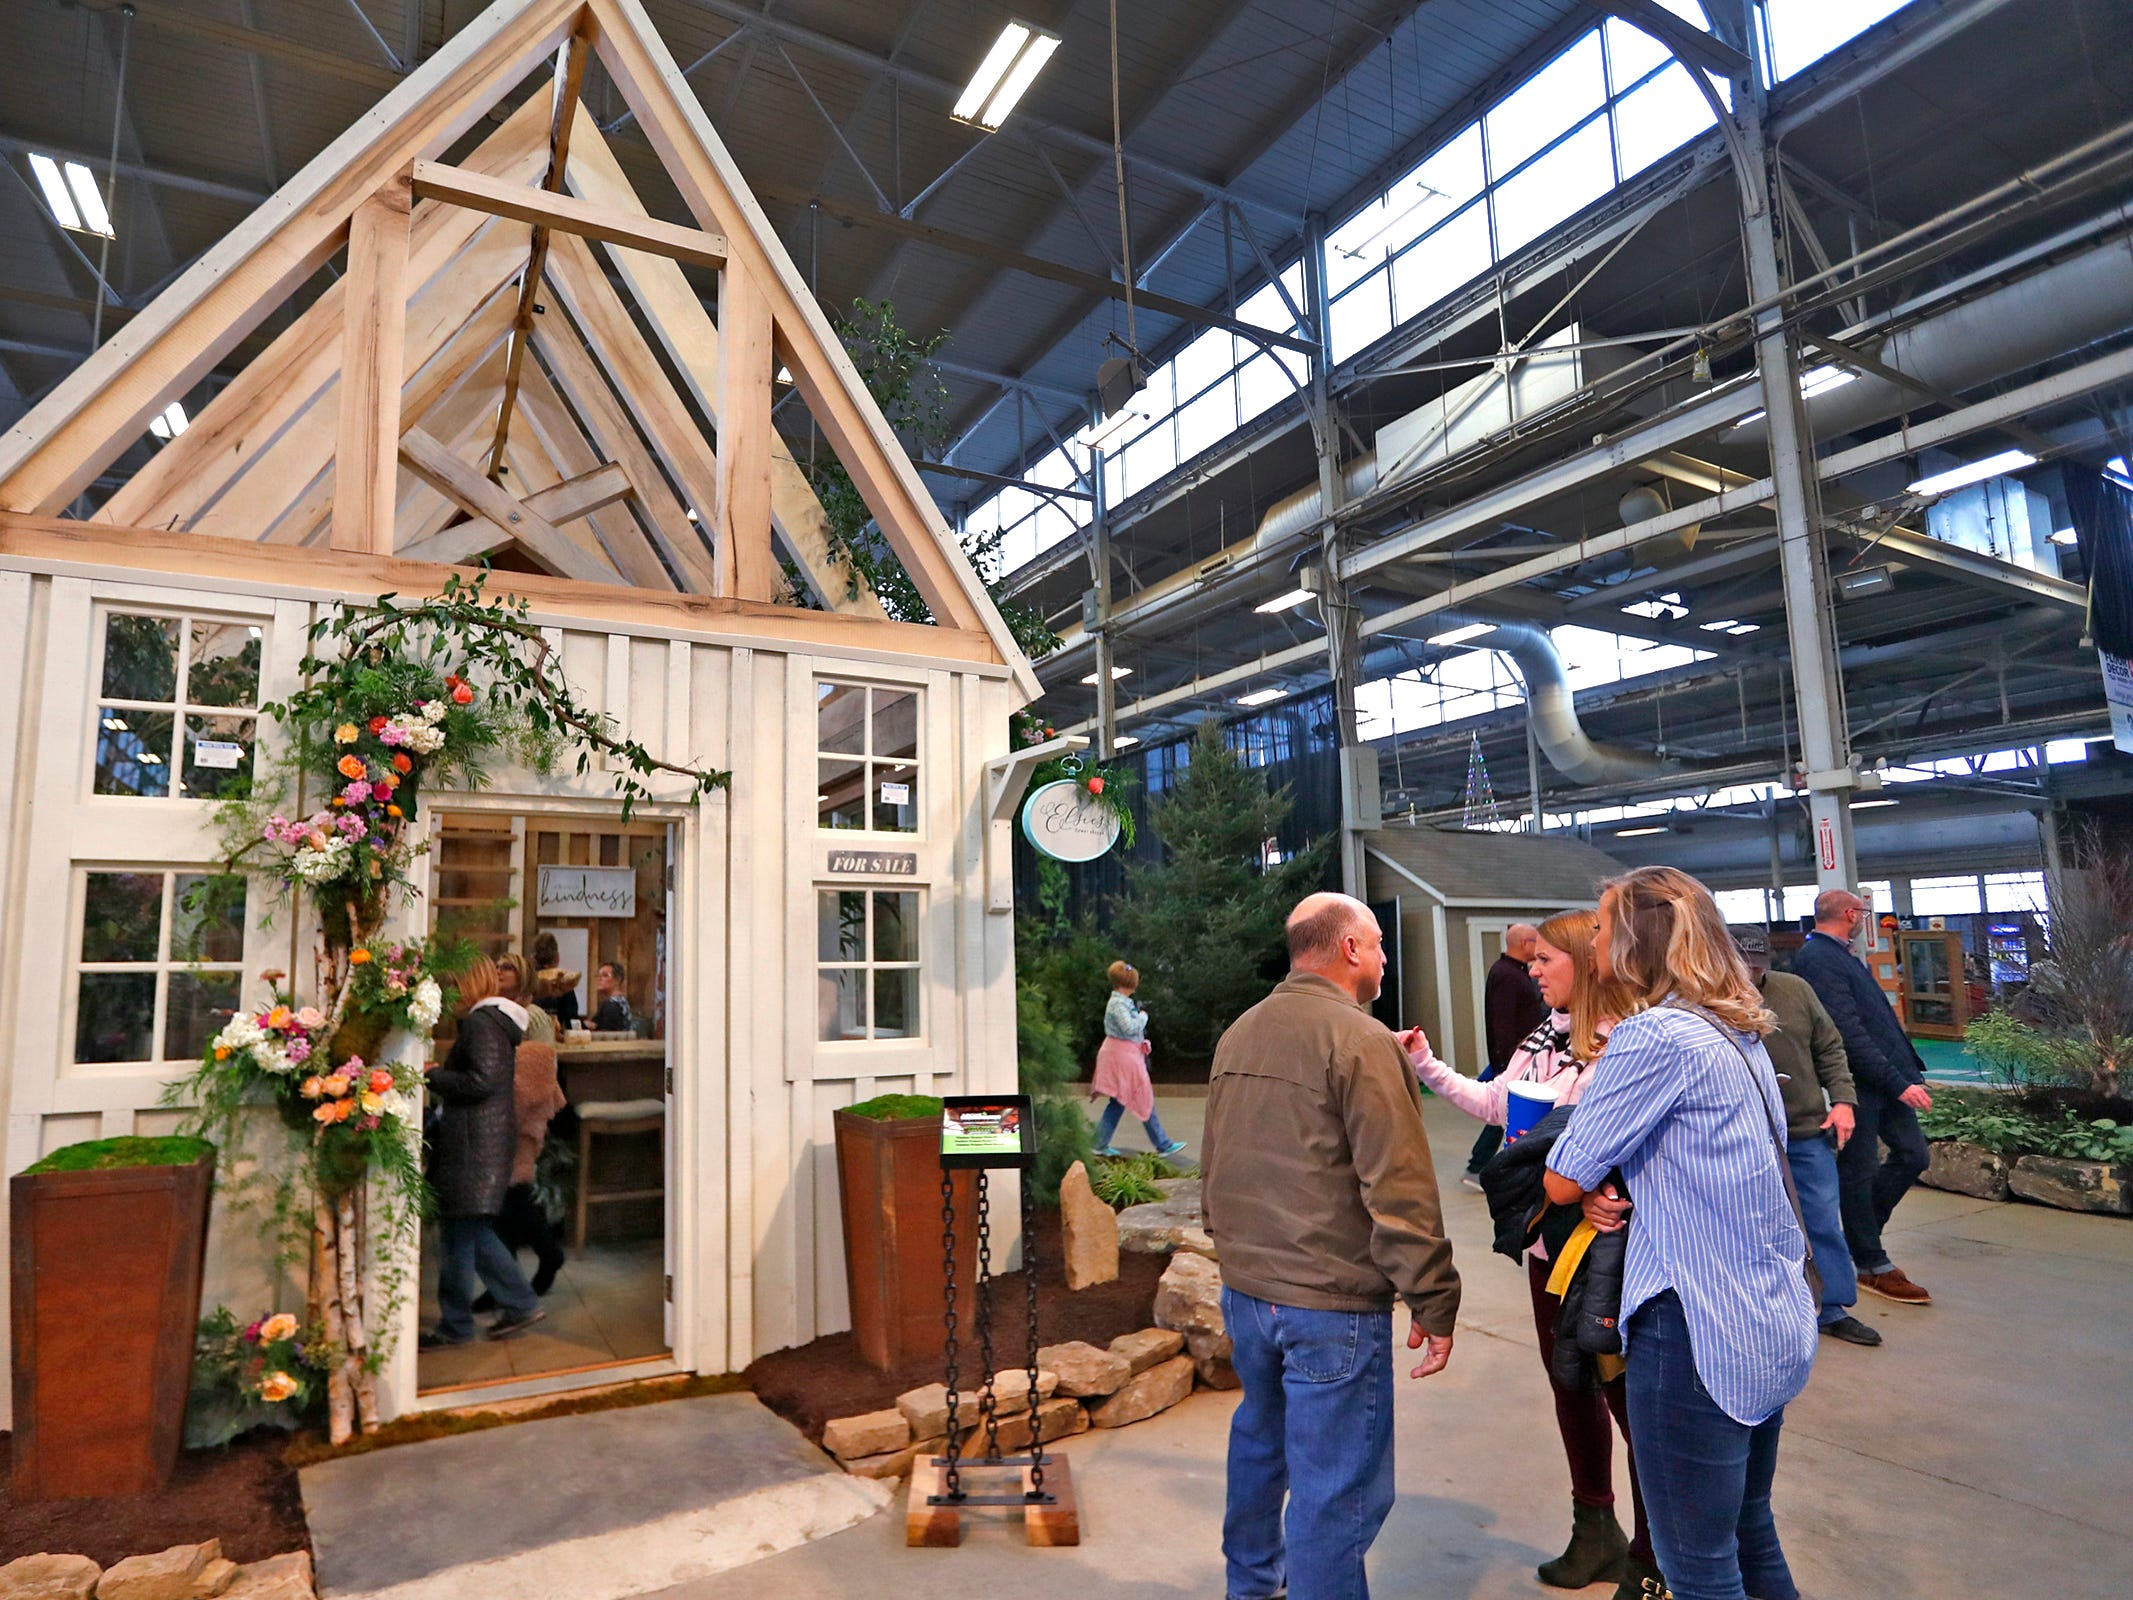 Elsie's Flower Shoppe, in this little house, includes flower for sale to take home, at the Indiana Flower + Patio Show, at the Indiana State Fairgrounds, Sunday, March 10, 2019.